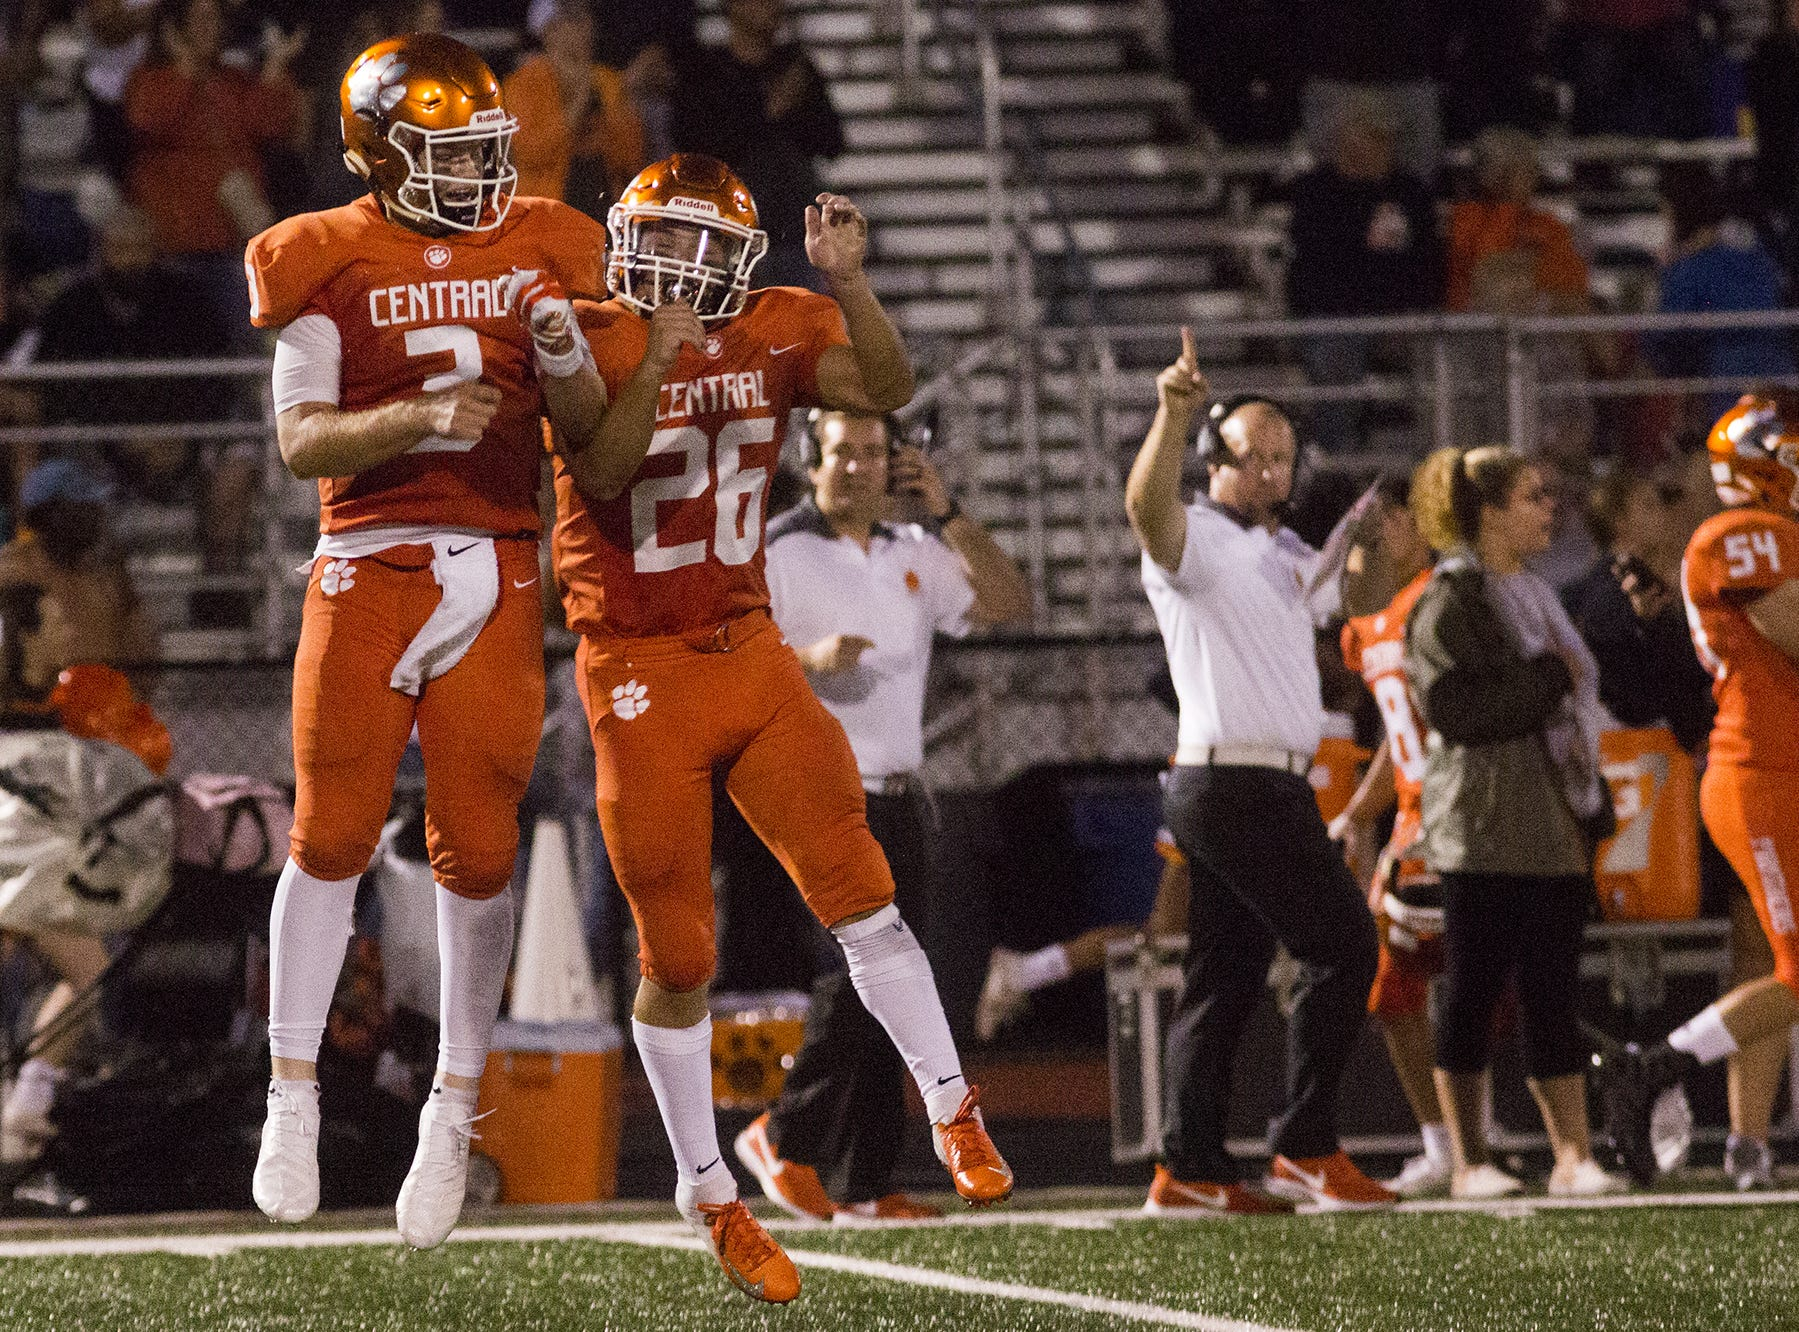 Central York quarterback Cade Pribula, left, and Hunter Werner celebrate after the Panthers second touchdown. Central York defeats Cumberland Valley 31-14 in football at Central York High School in Springettsbury Township, Friday, August 31, 2018.